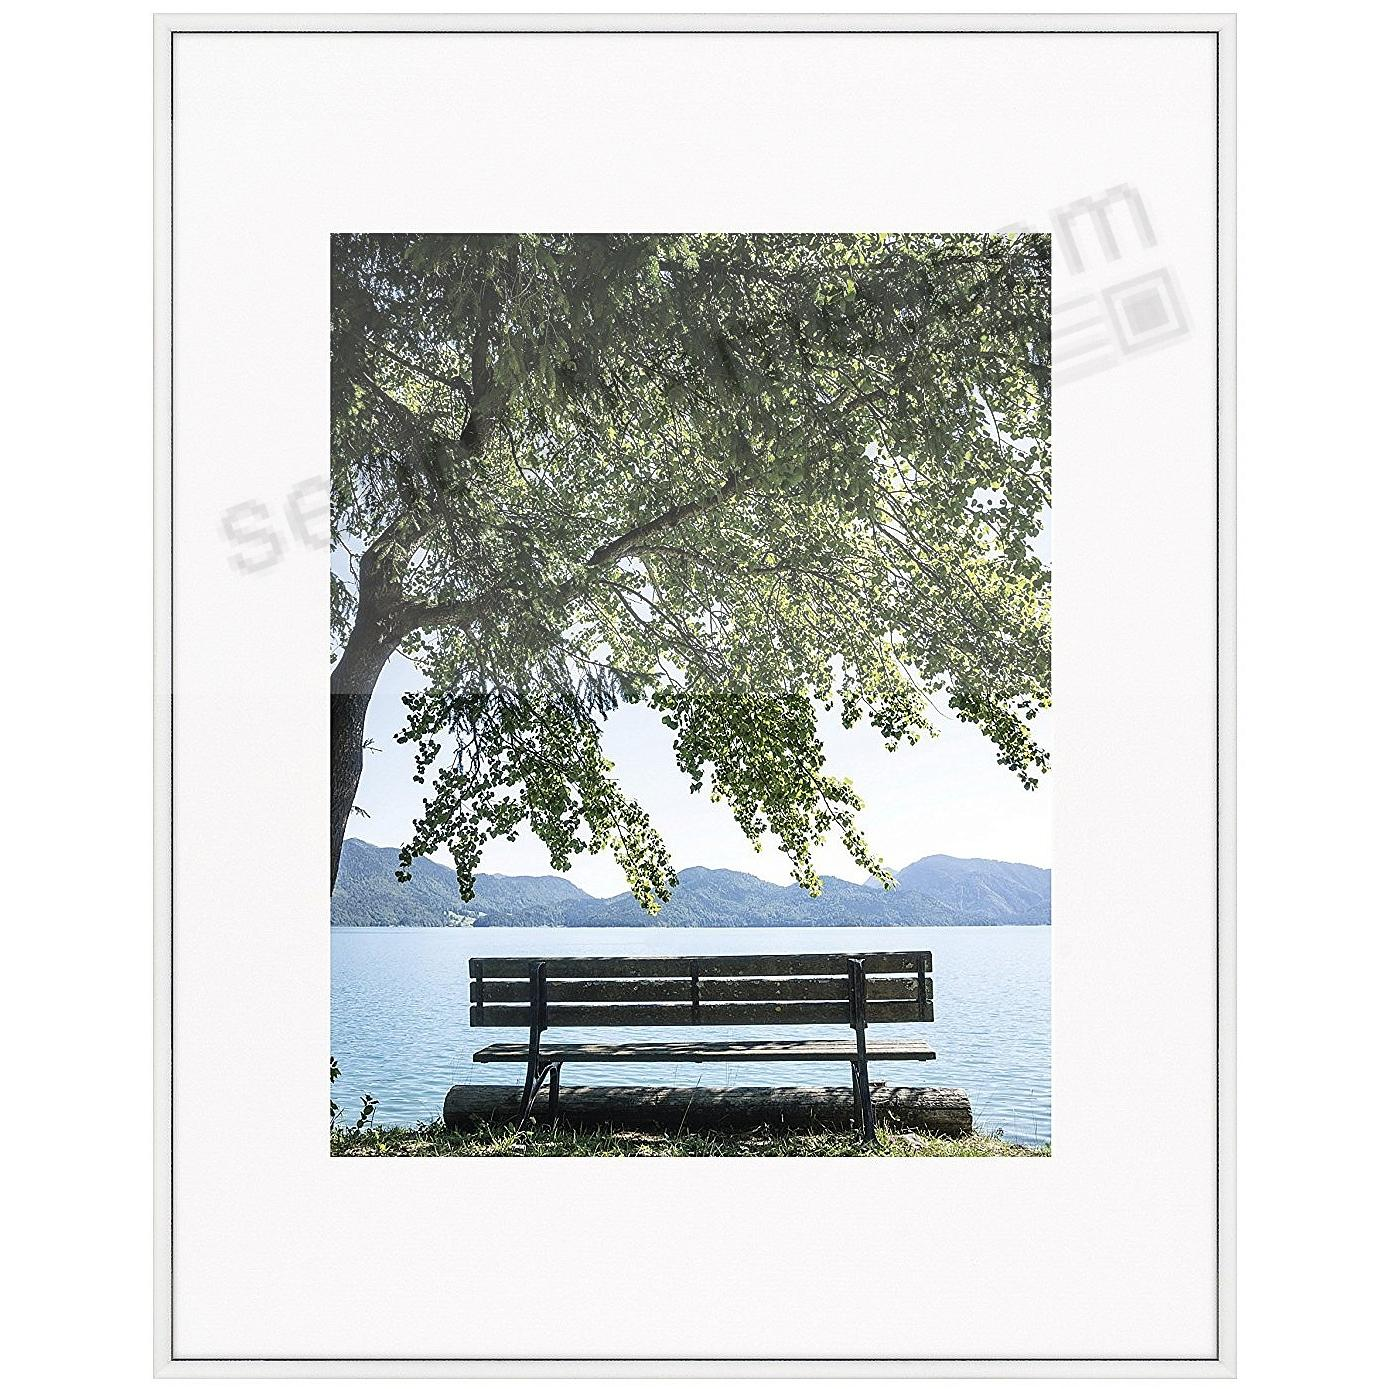 STUDIO SILVER metallic poster frame matted 16x20/11x14 by Nielsen ...